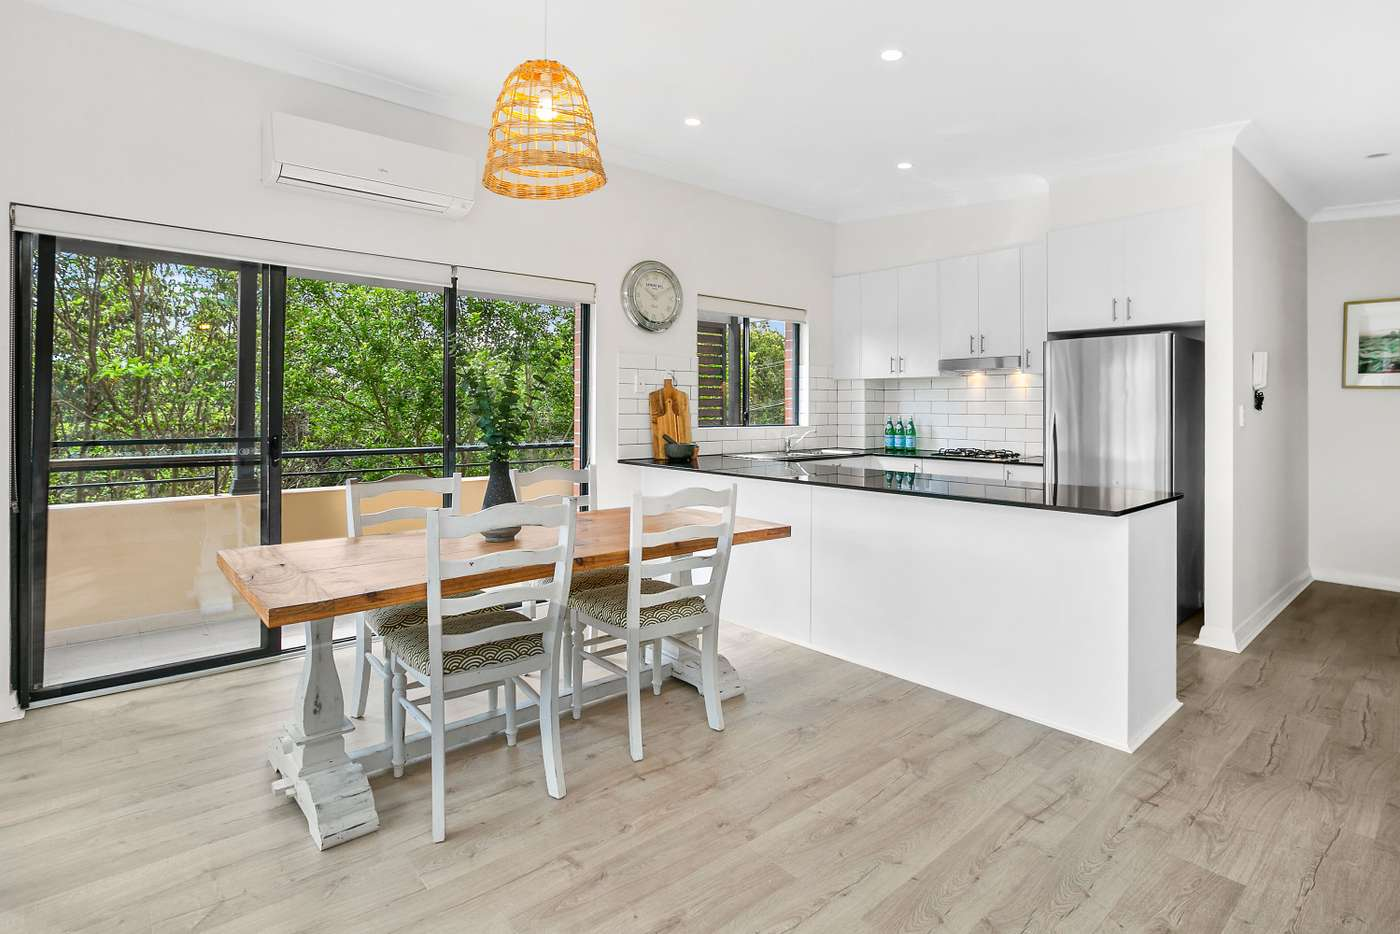 Main view of Homely apartment listing, 21/30-34 Gordon Street, Manly Vale NSW 2093